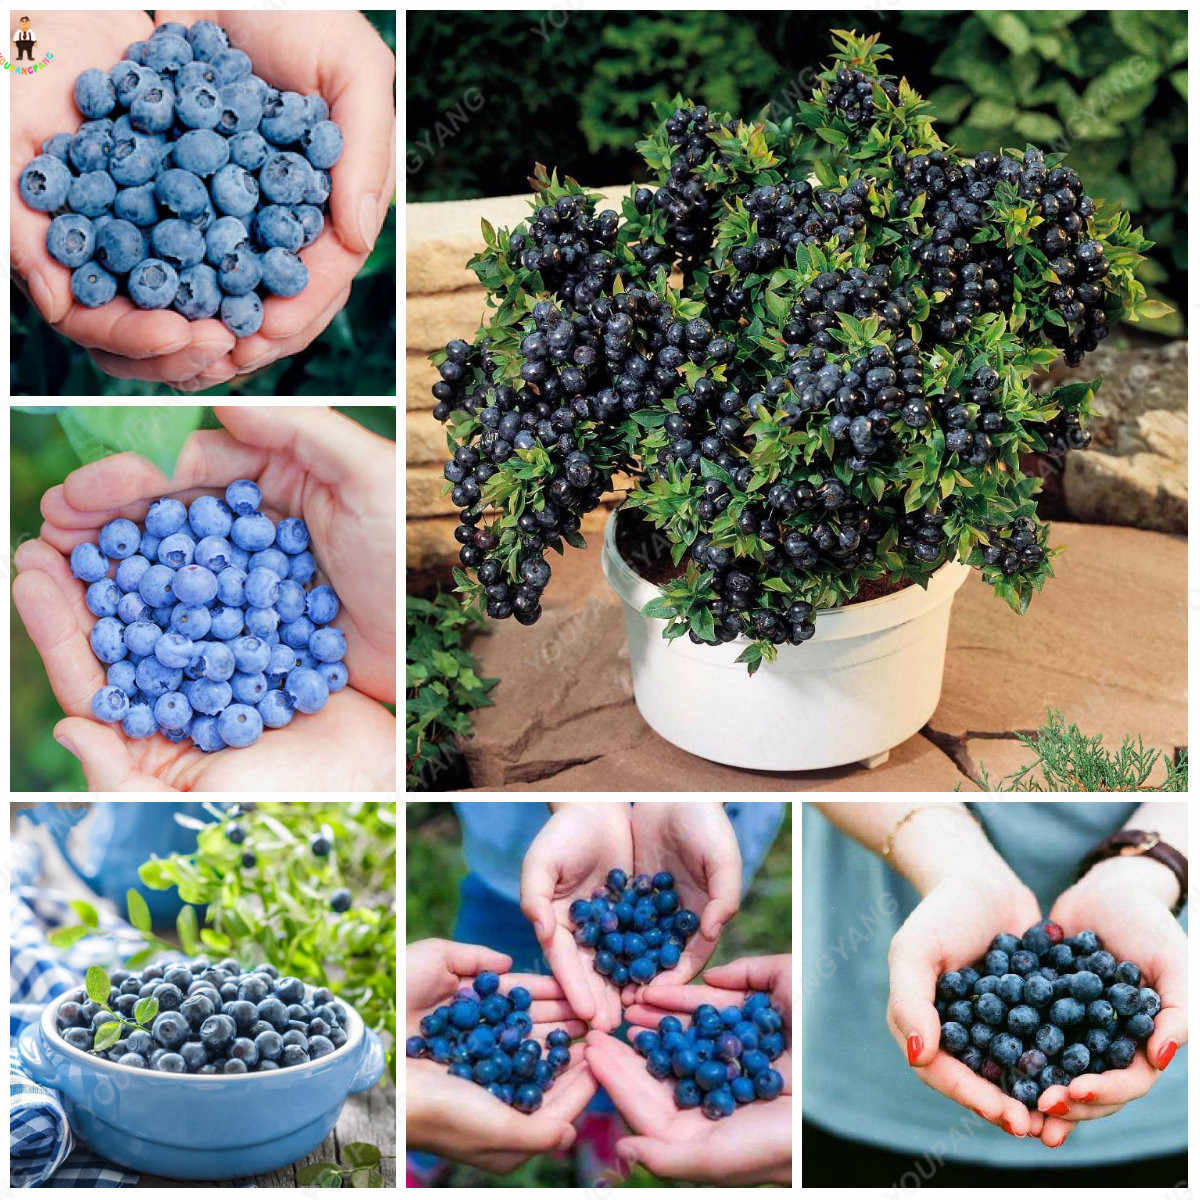 100pcs BlueBerry Bonsai Fruit Outdoor Tree Highbush Blueberries DIY Countyard Plants for Home & Garden Easy to Grow